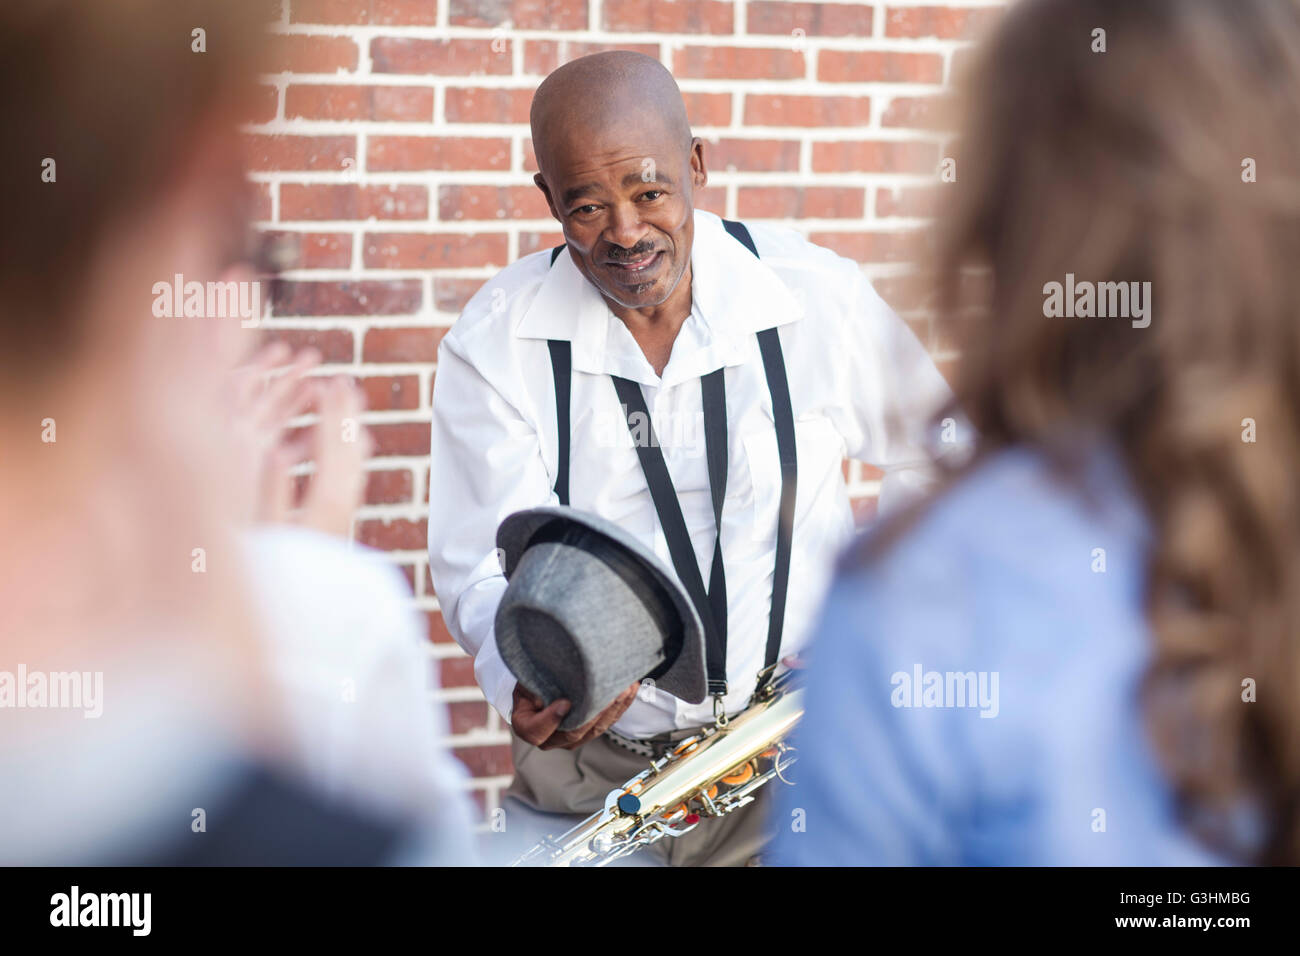 Street musician bowing to crowd - Stock Image